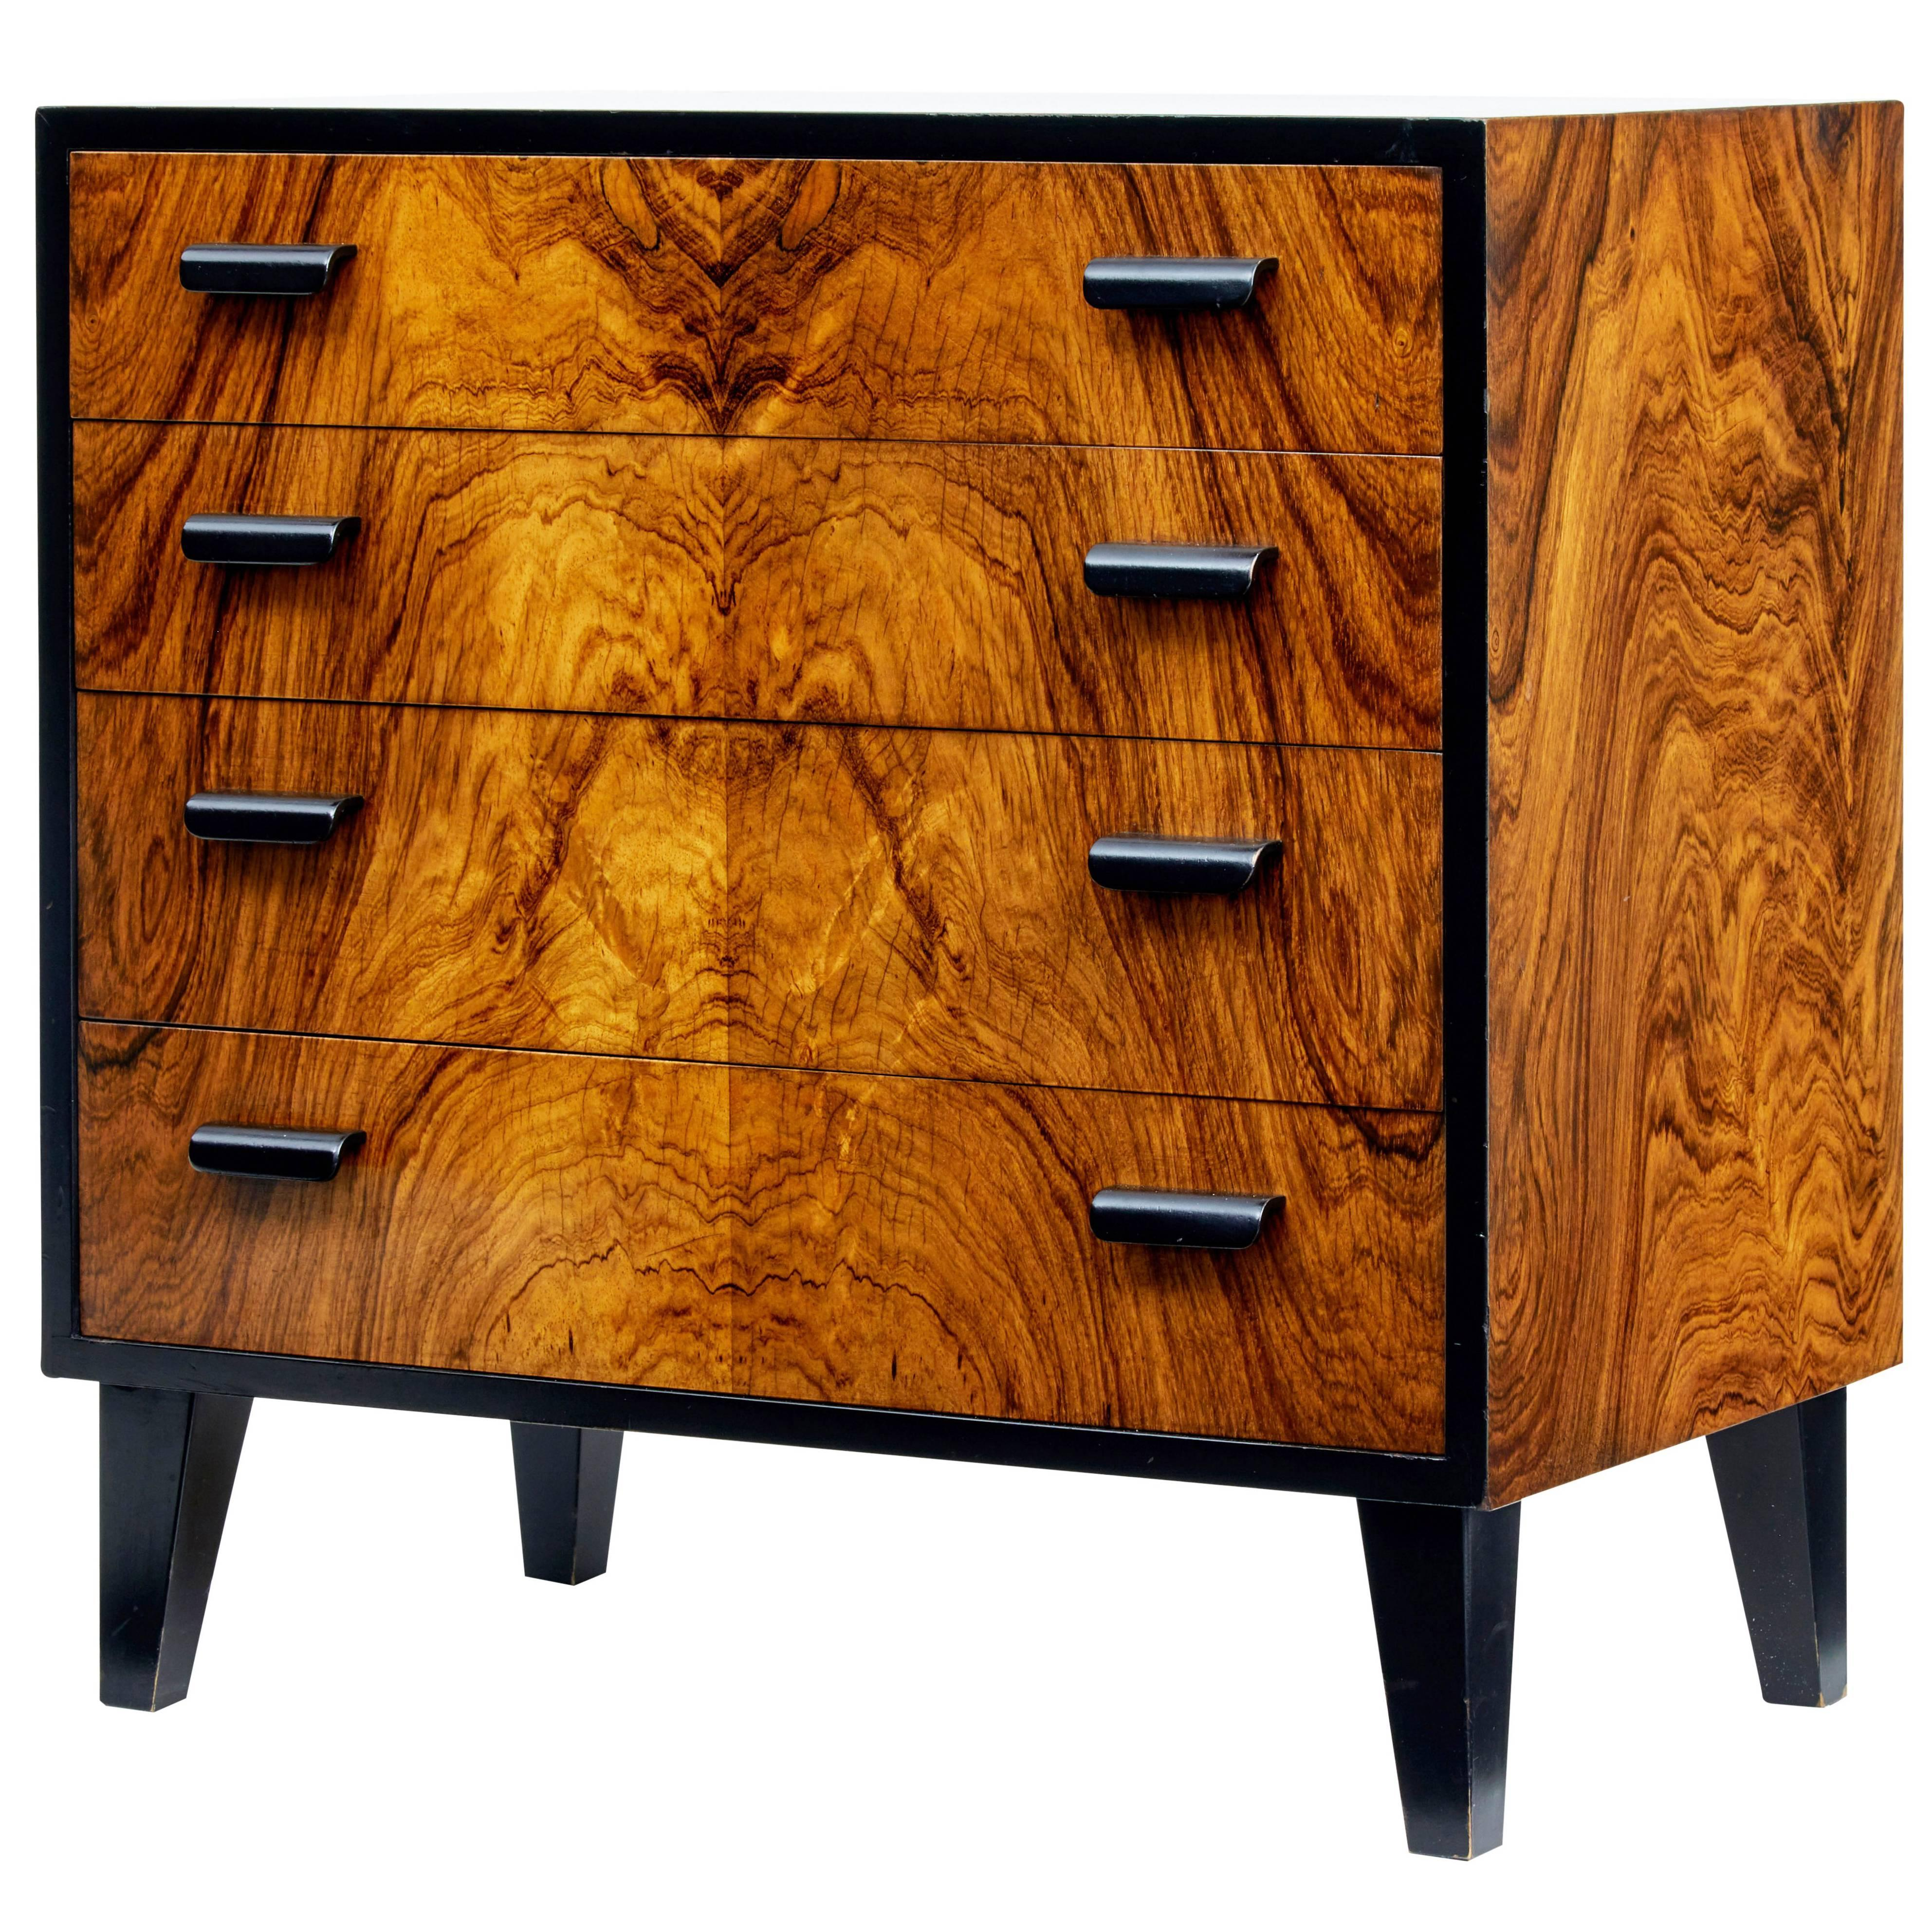 1950s art deco design small chest of drawers